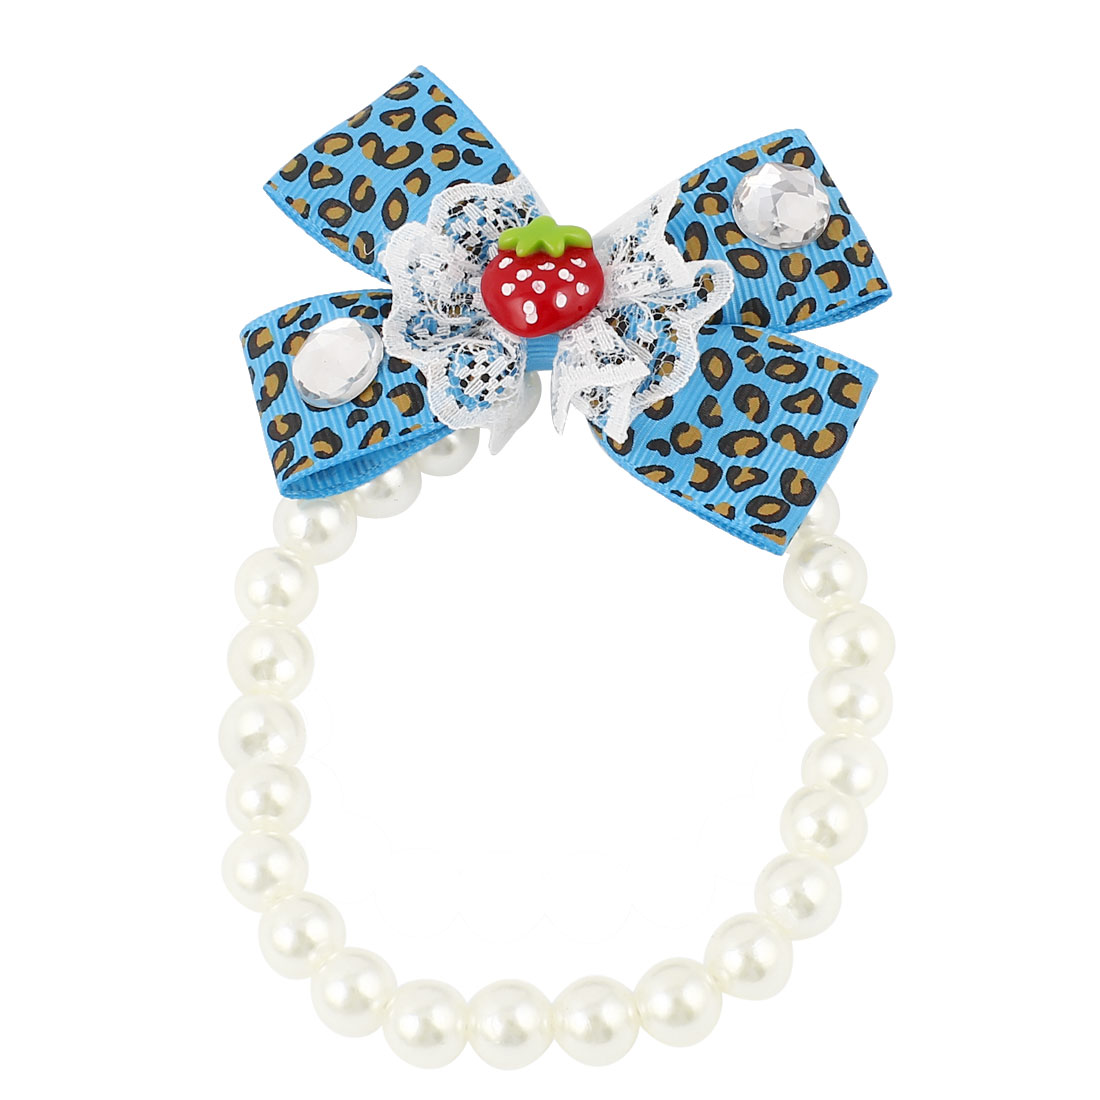 Lace Bowknot Accent Pet Dog Plastic Beads Imitation Pearls Collar Necklace White Blue S